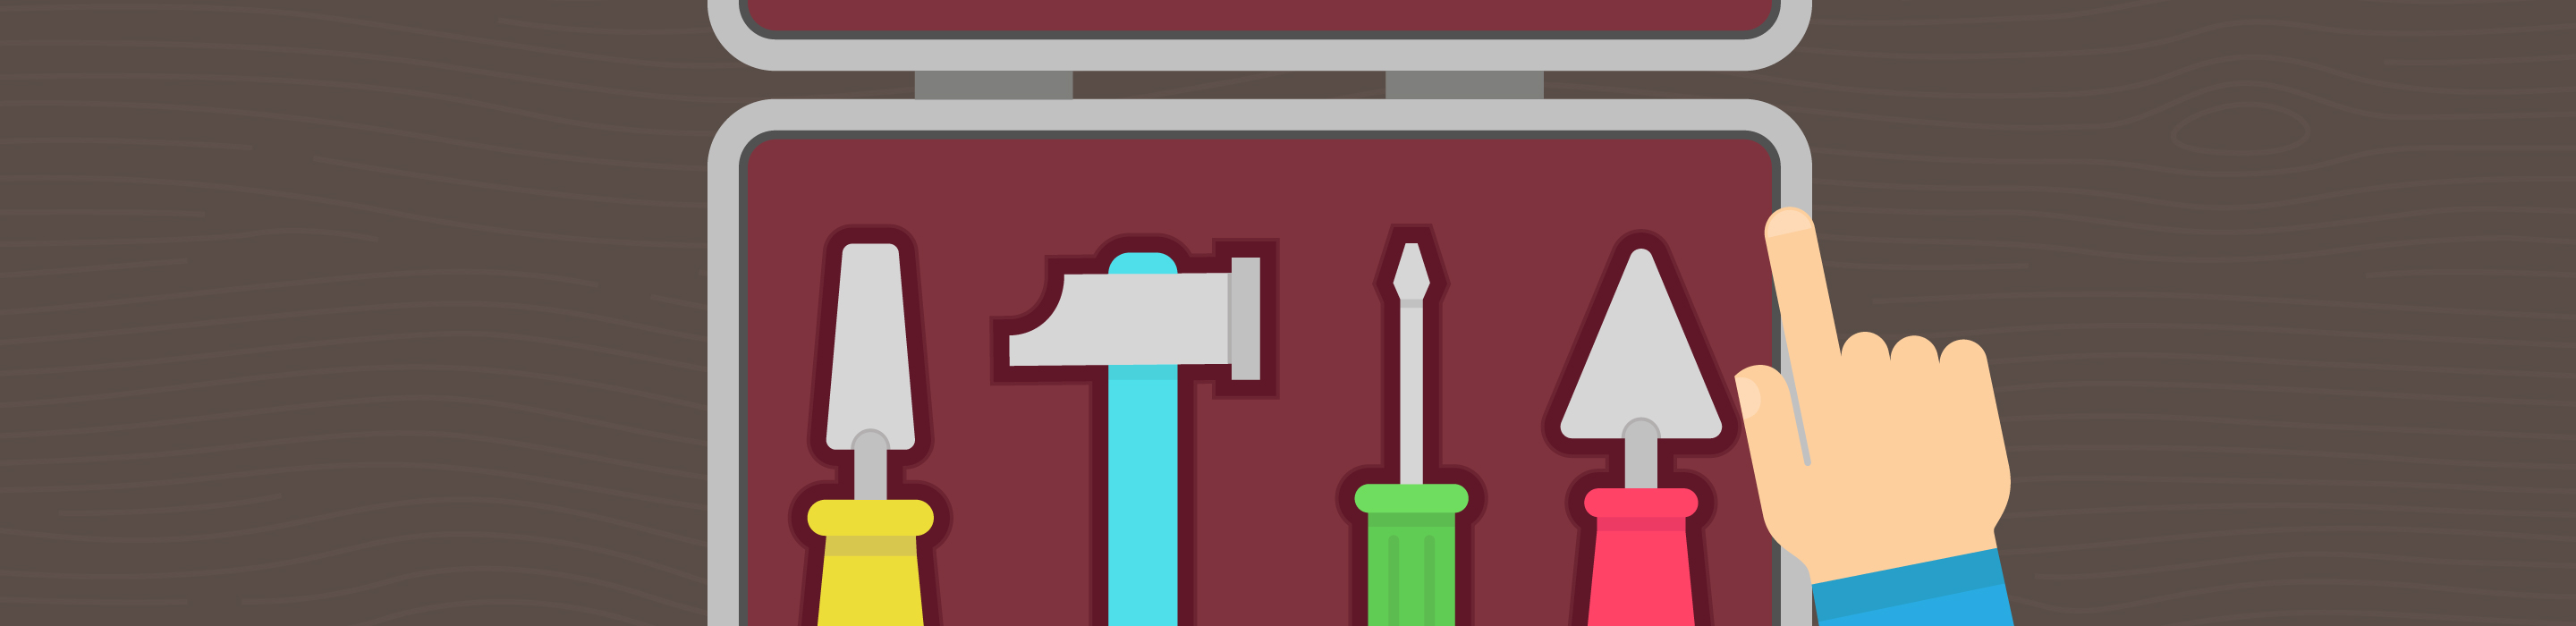 How to Select the Right ITSM Tool